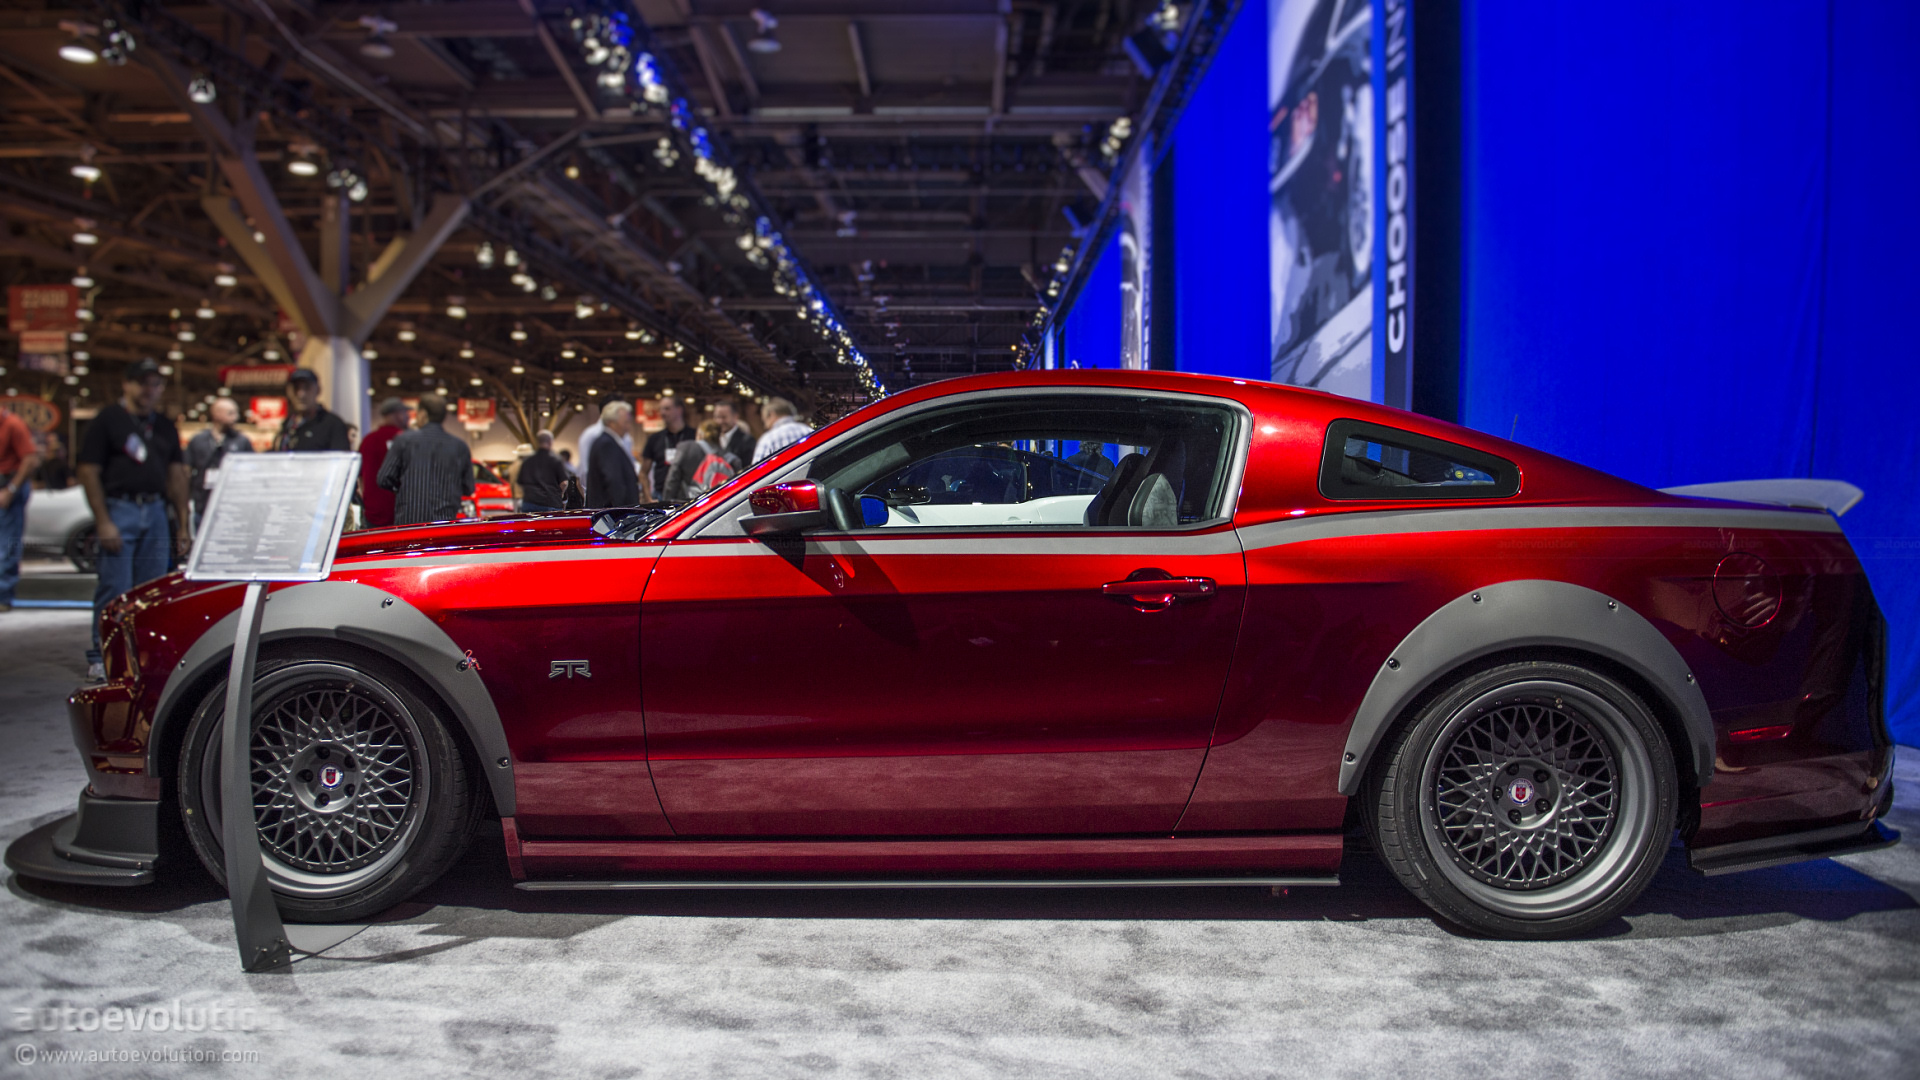 Sema 2012 2013 Ford Mustang Rtr Spec 3 By Mothers   Auto ... - photo#8